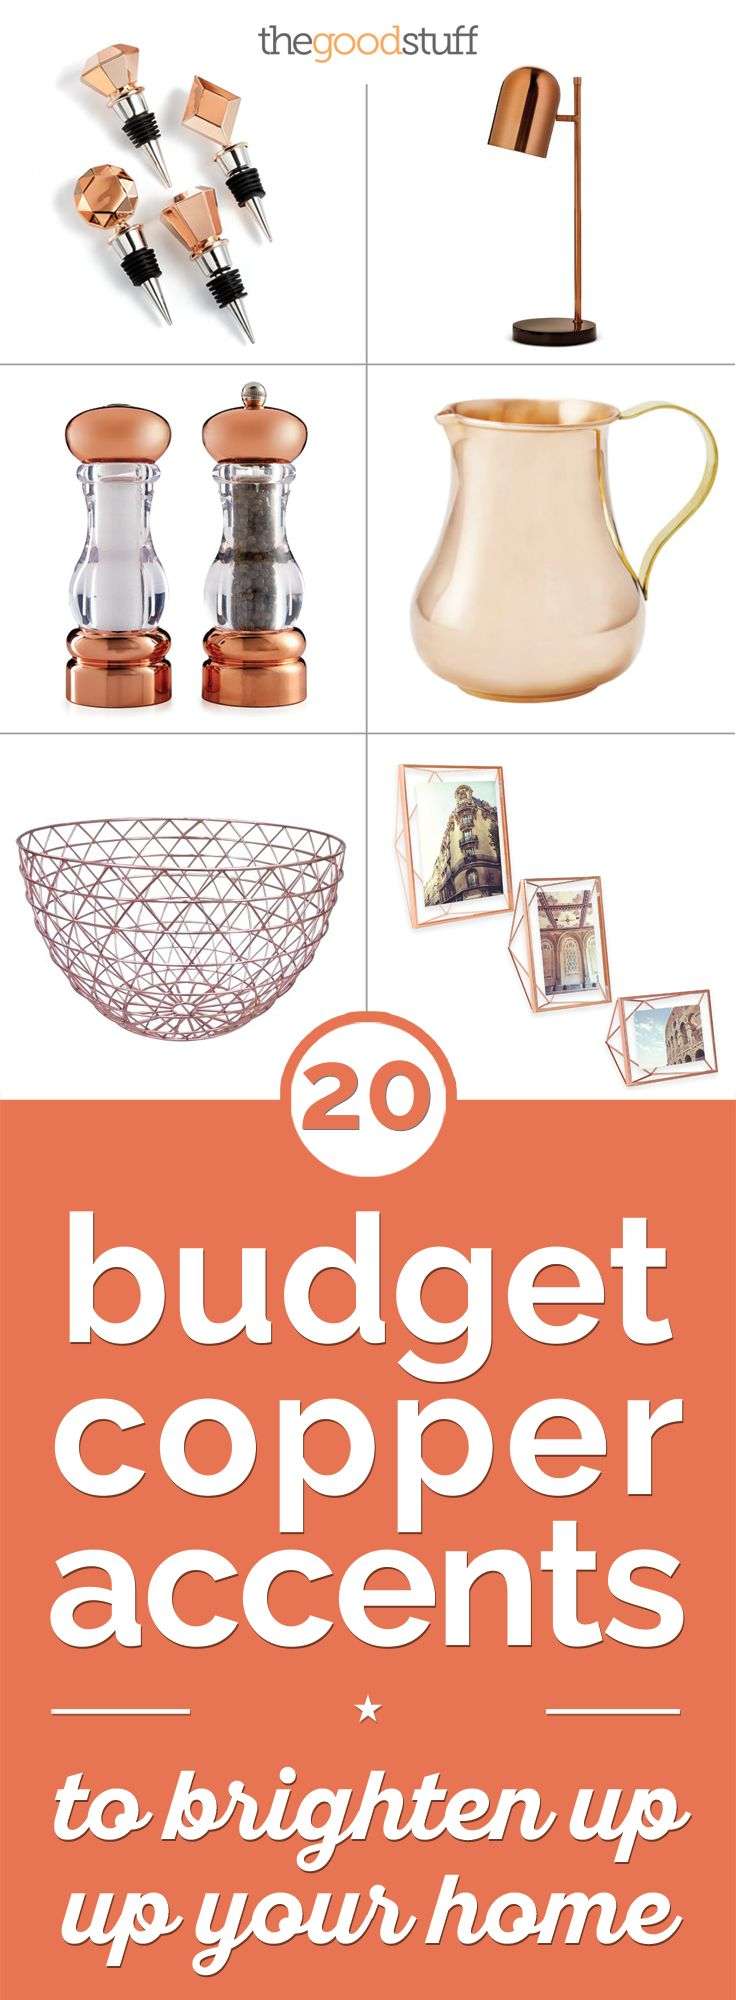 20 Budget Copper Accents to Brighten Up Your Home